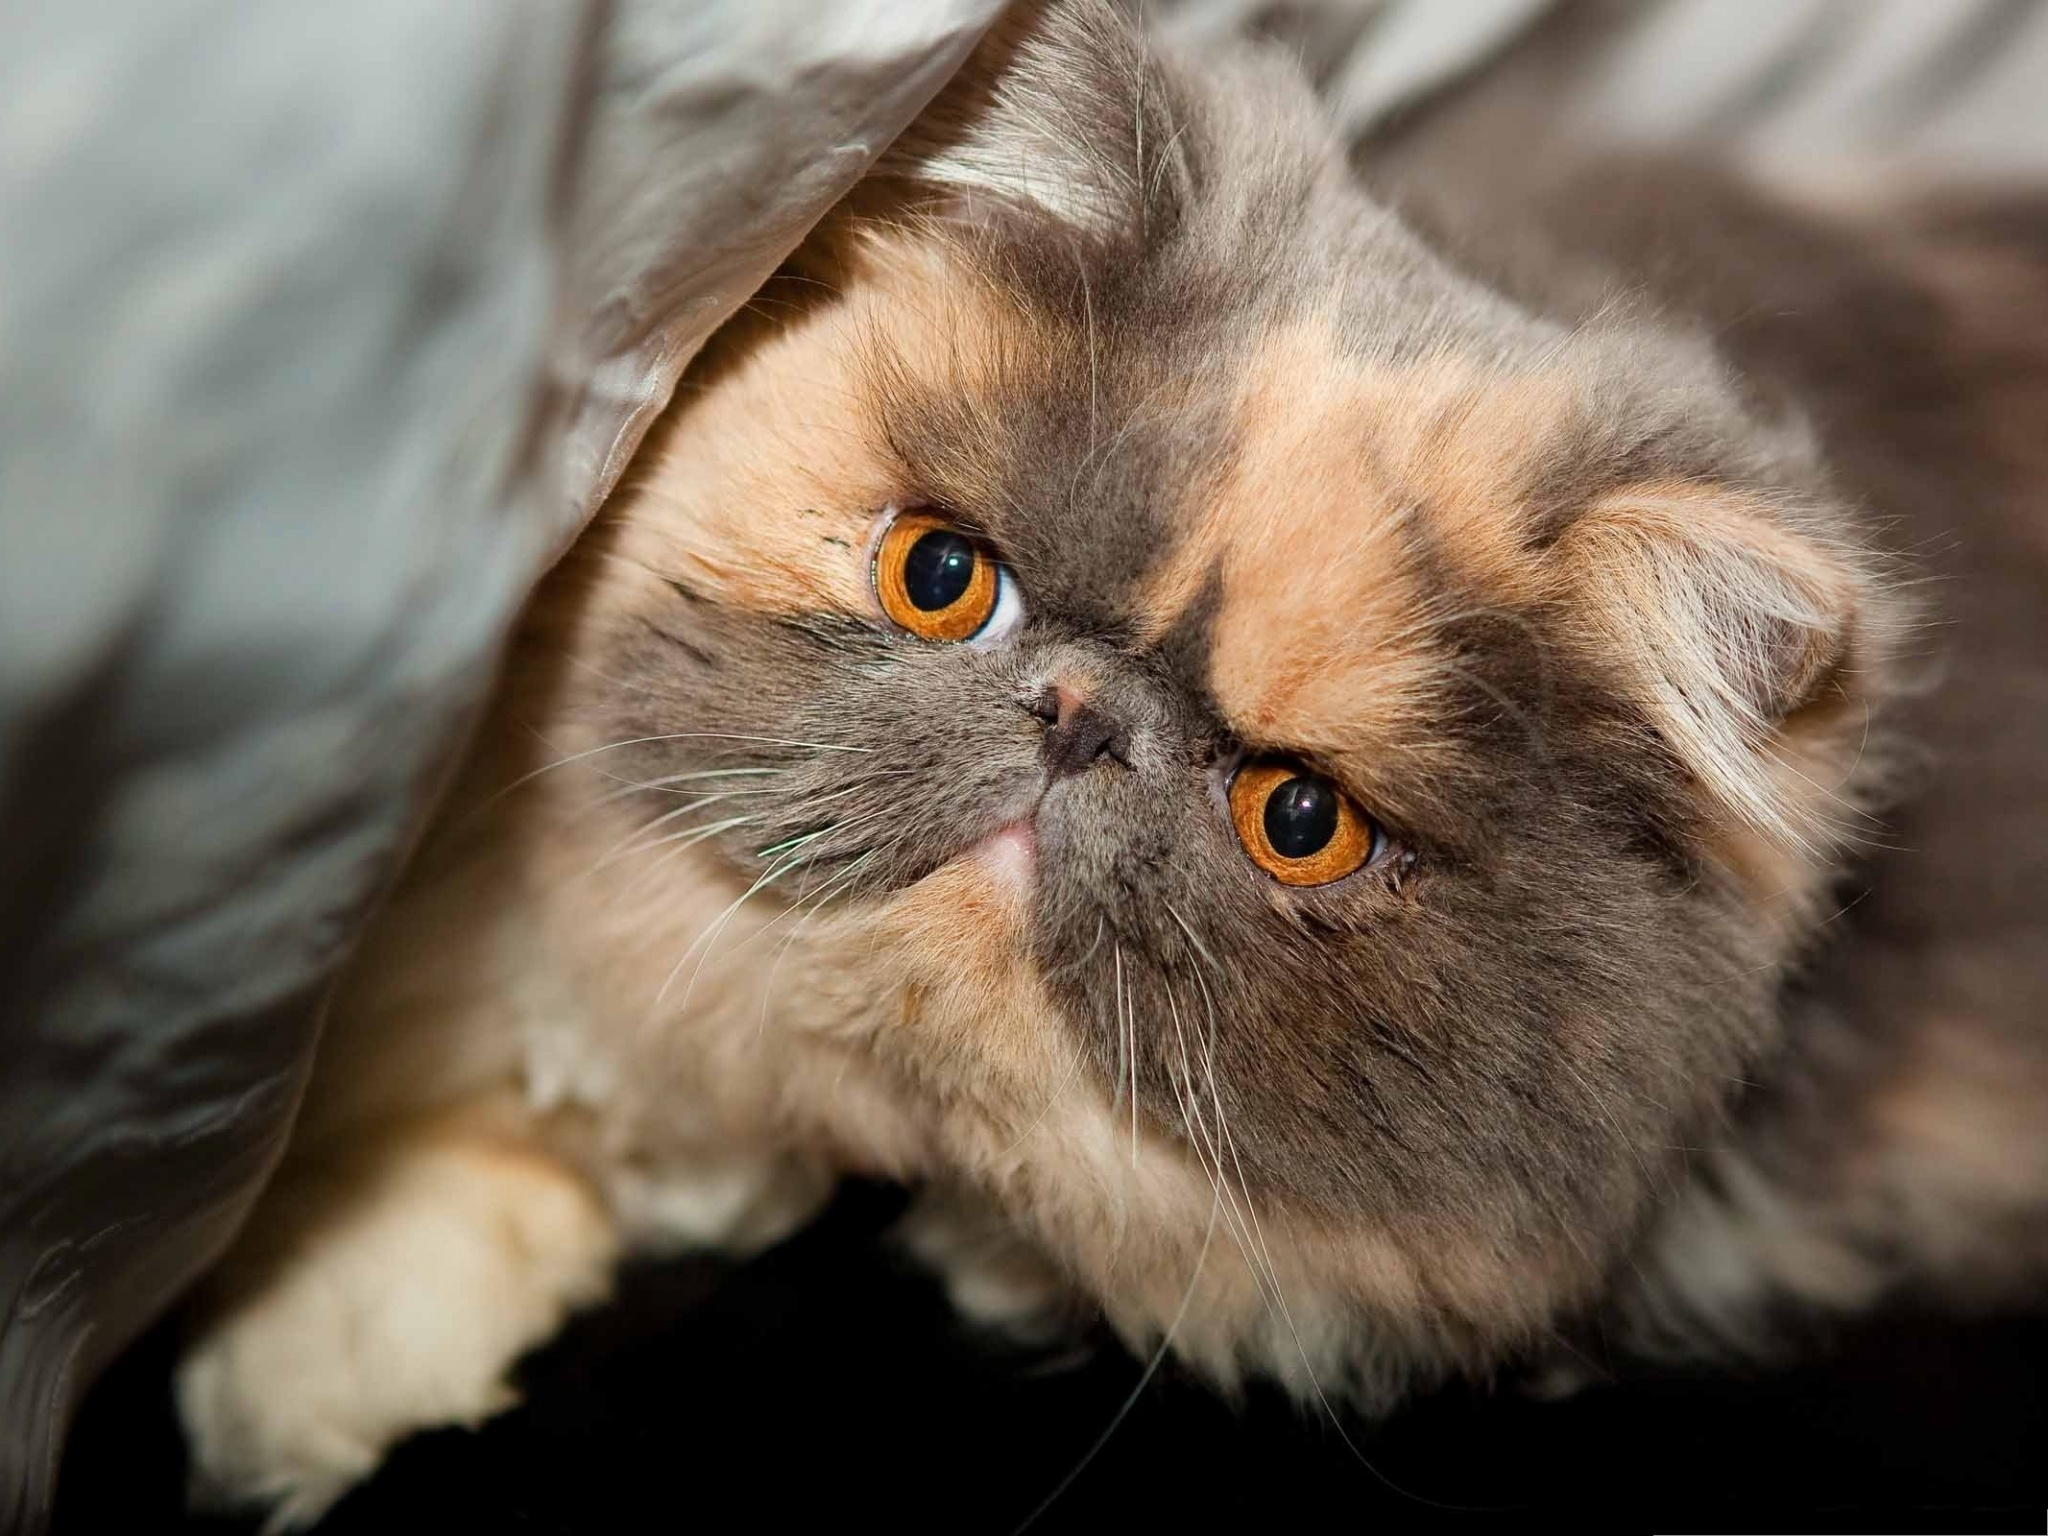 click to free download the wallpaper--Cute Cat Images, Exotic and Persian Cat, Iritated and Strange Look 2048X1536 free wallpaper download